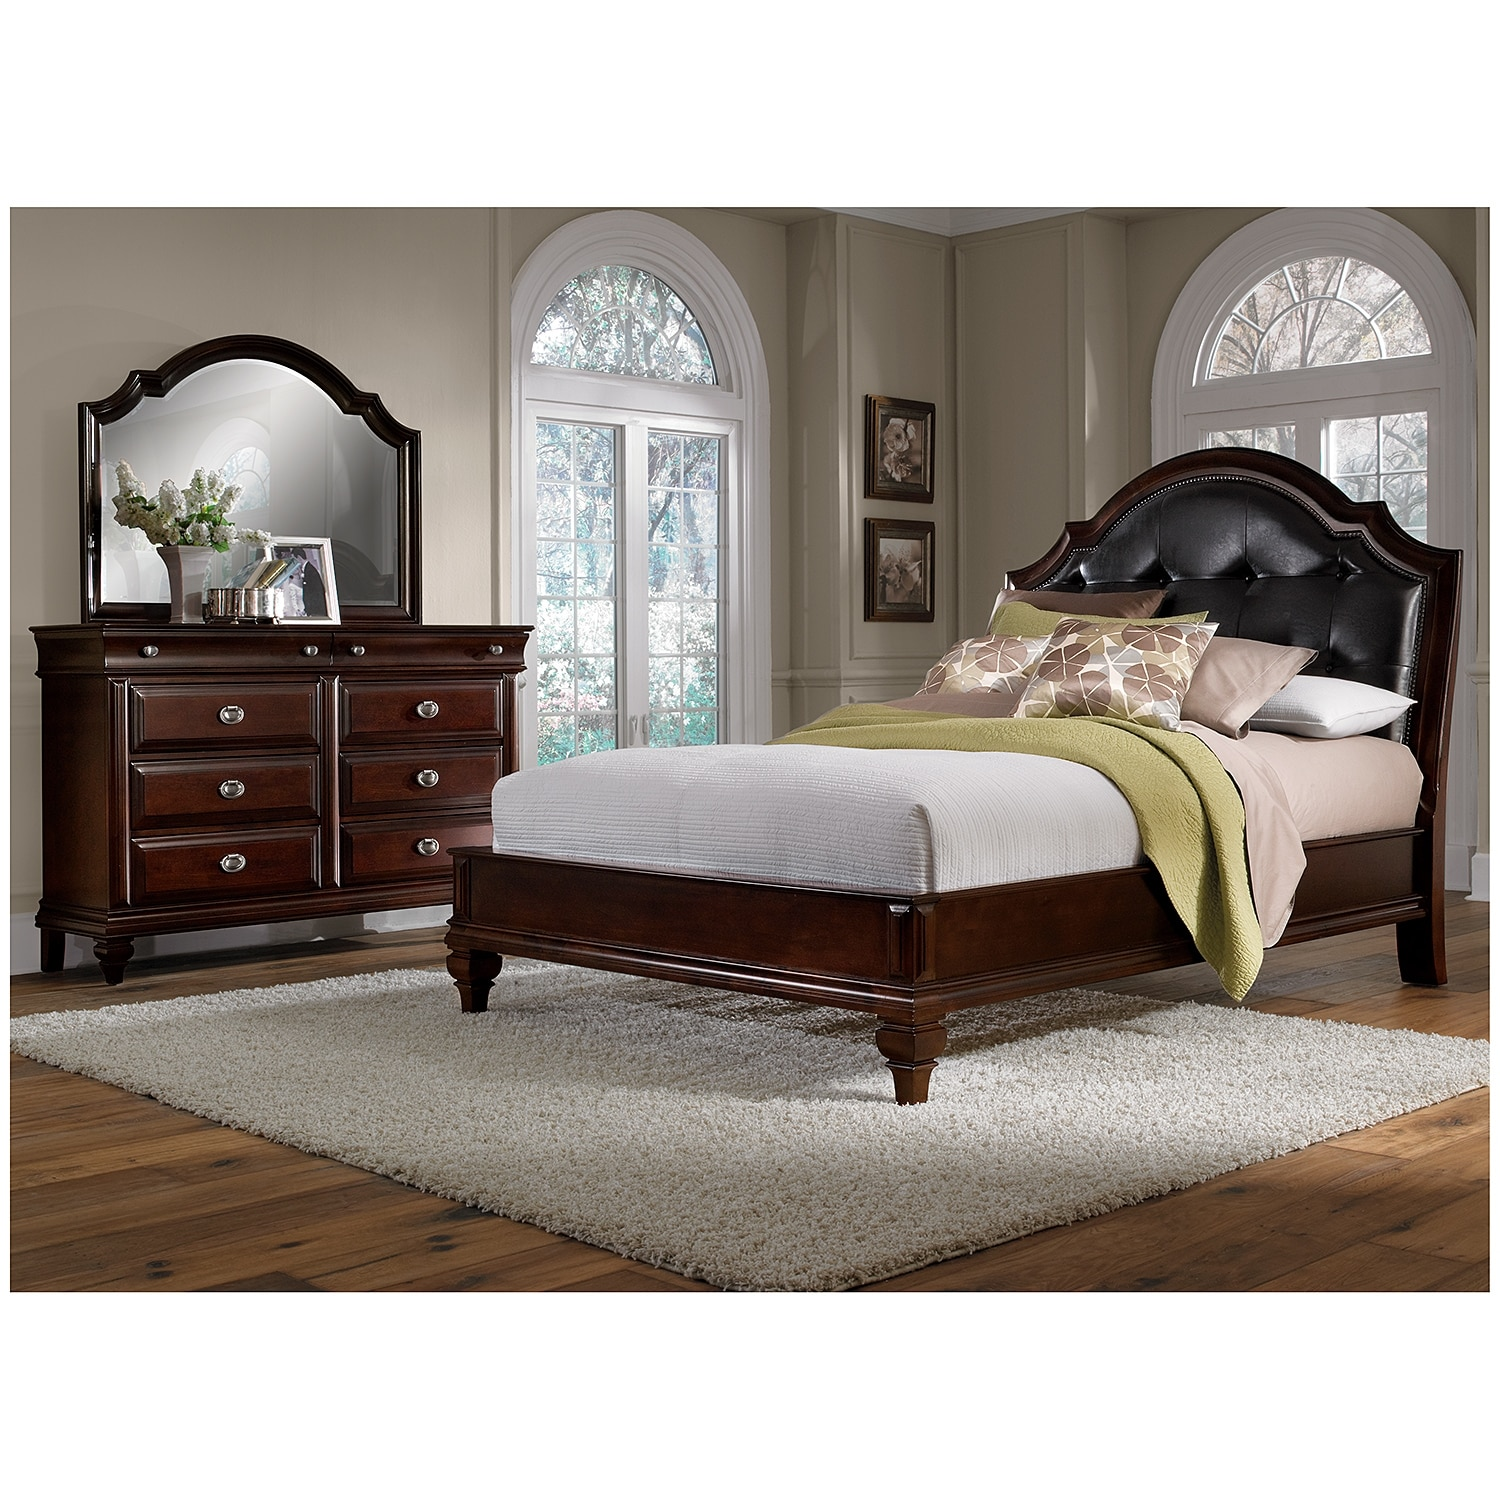 ... 5 Piece Queen Bedroom Set   Cherry. Hover To Zoom